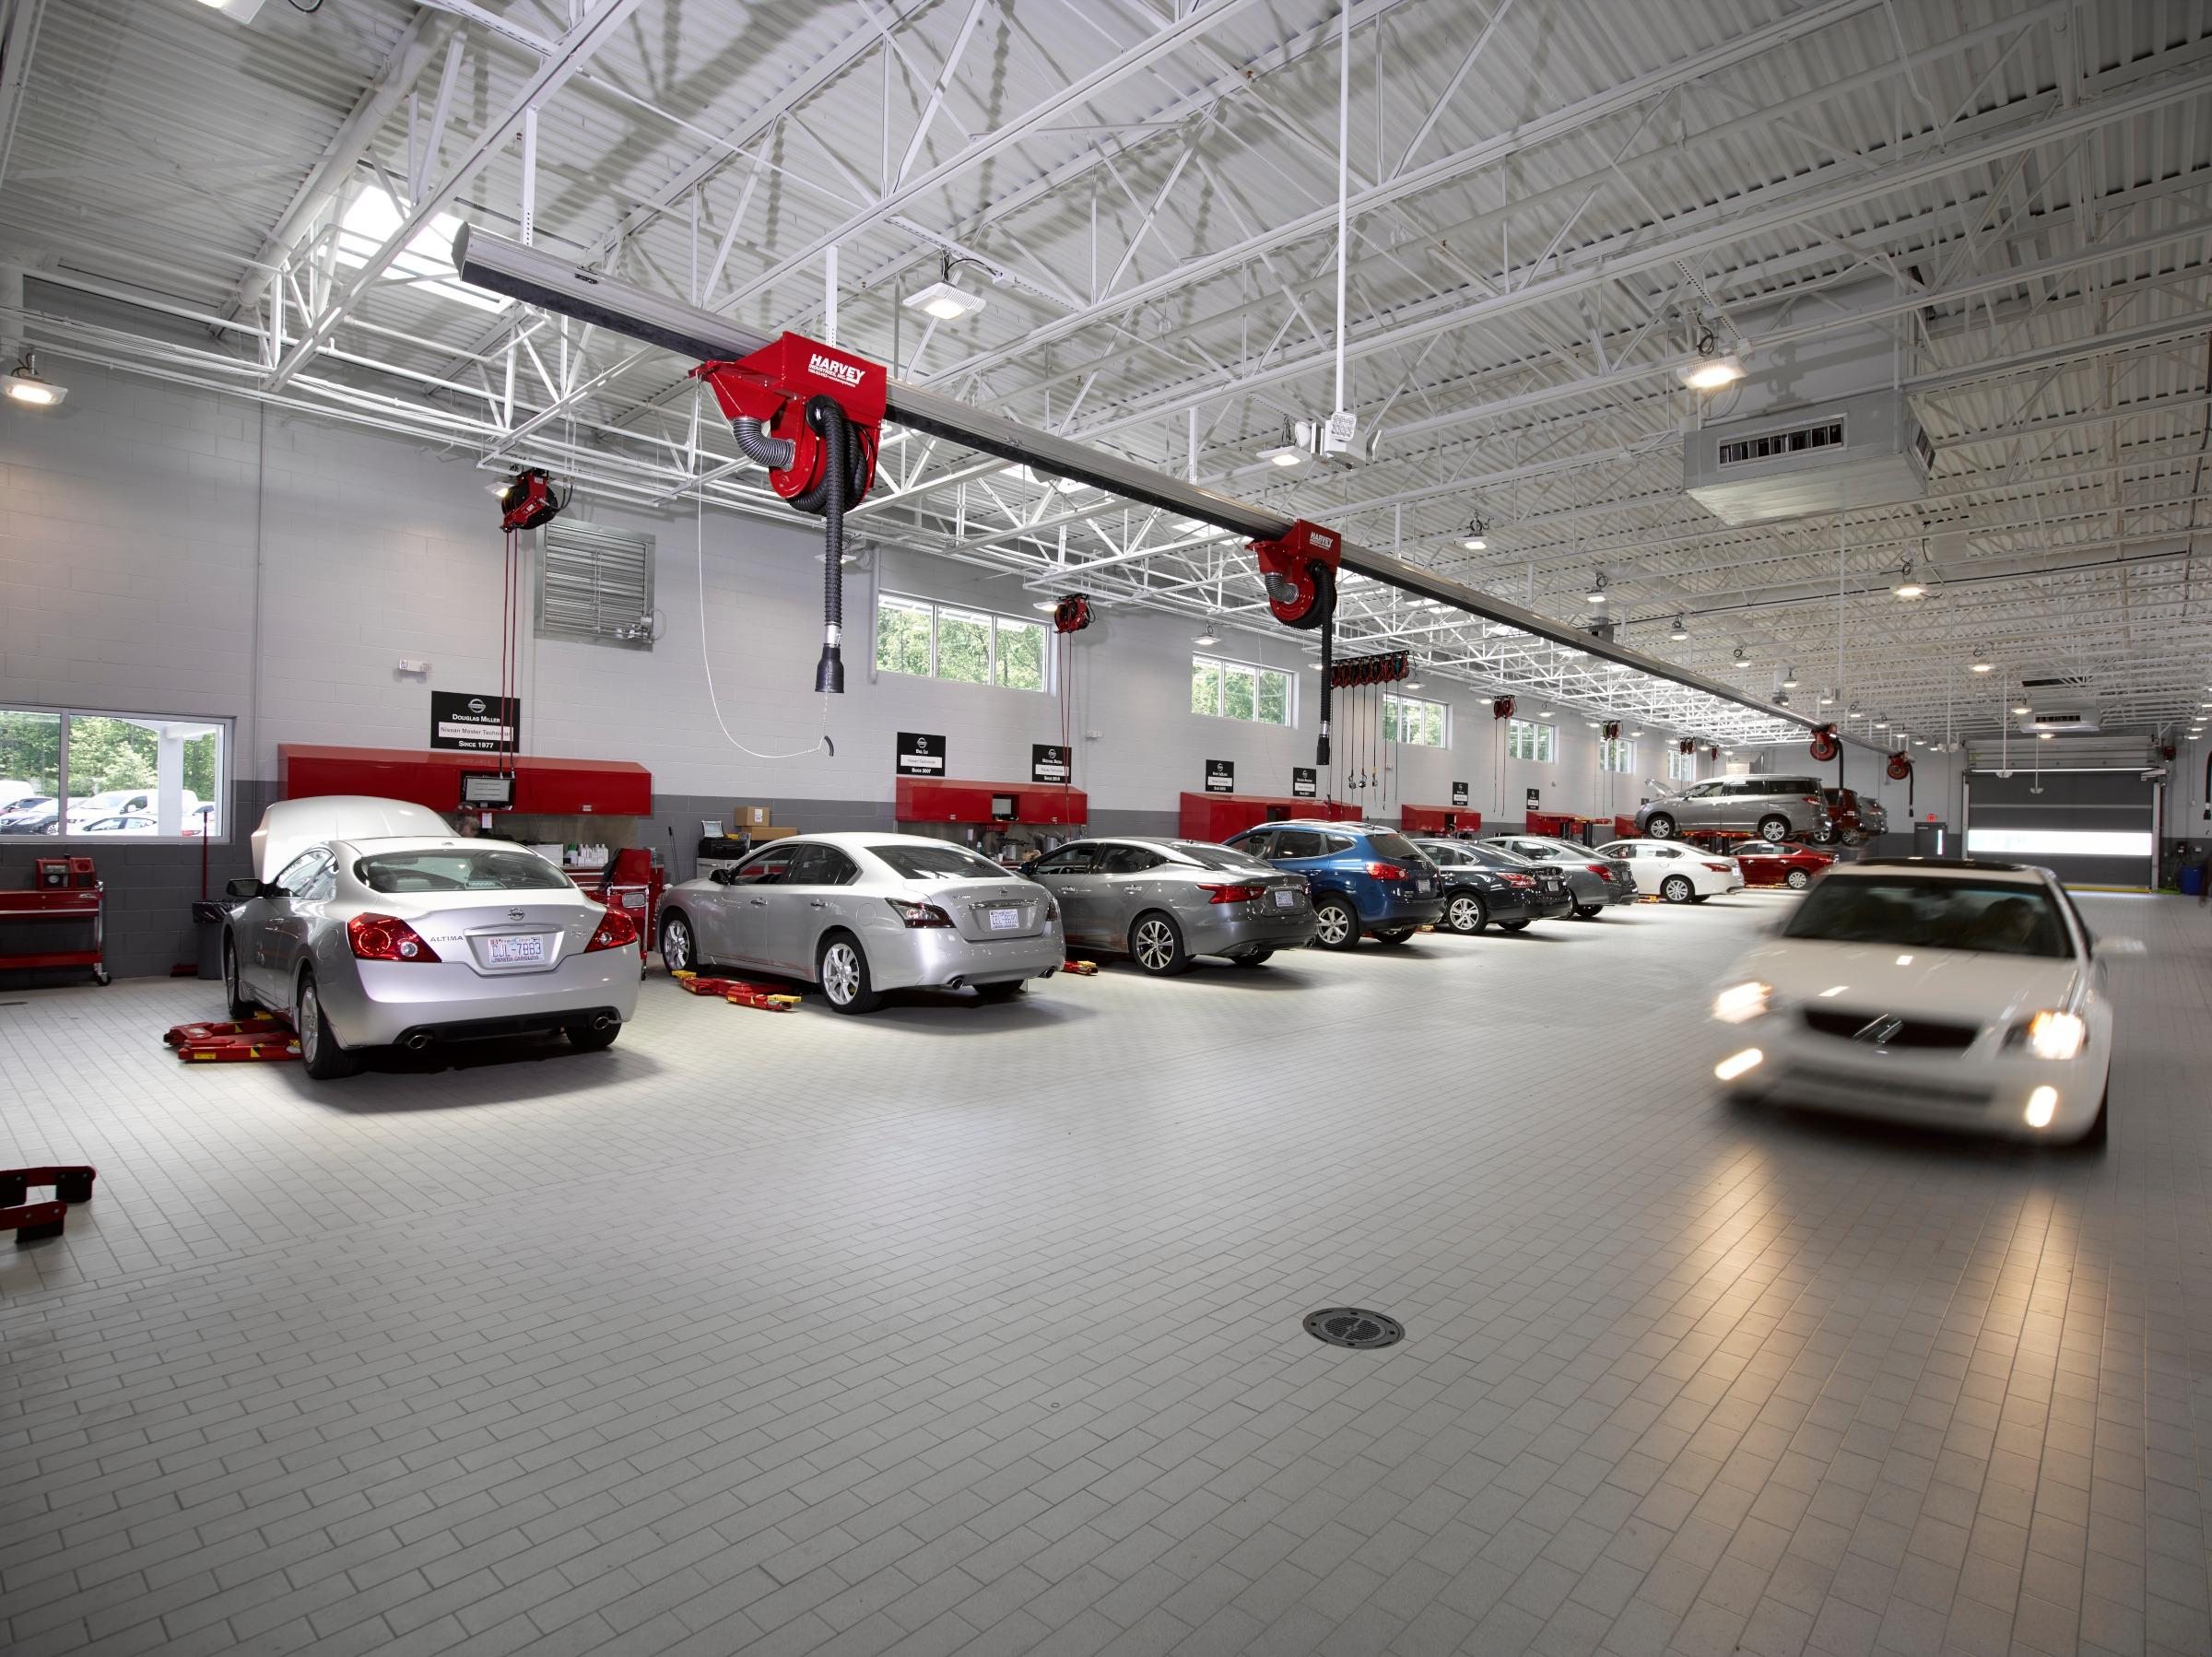 Superior Fred Anderson Toyota Raleigh Nc U003eu003e Fred Anderson Nissan Of Raleigh, Raleigh  North Carolina